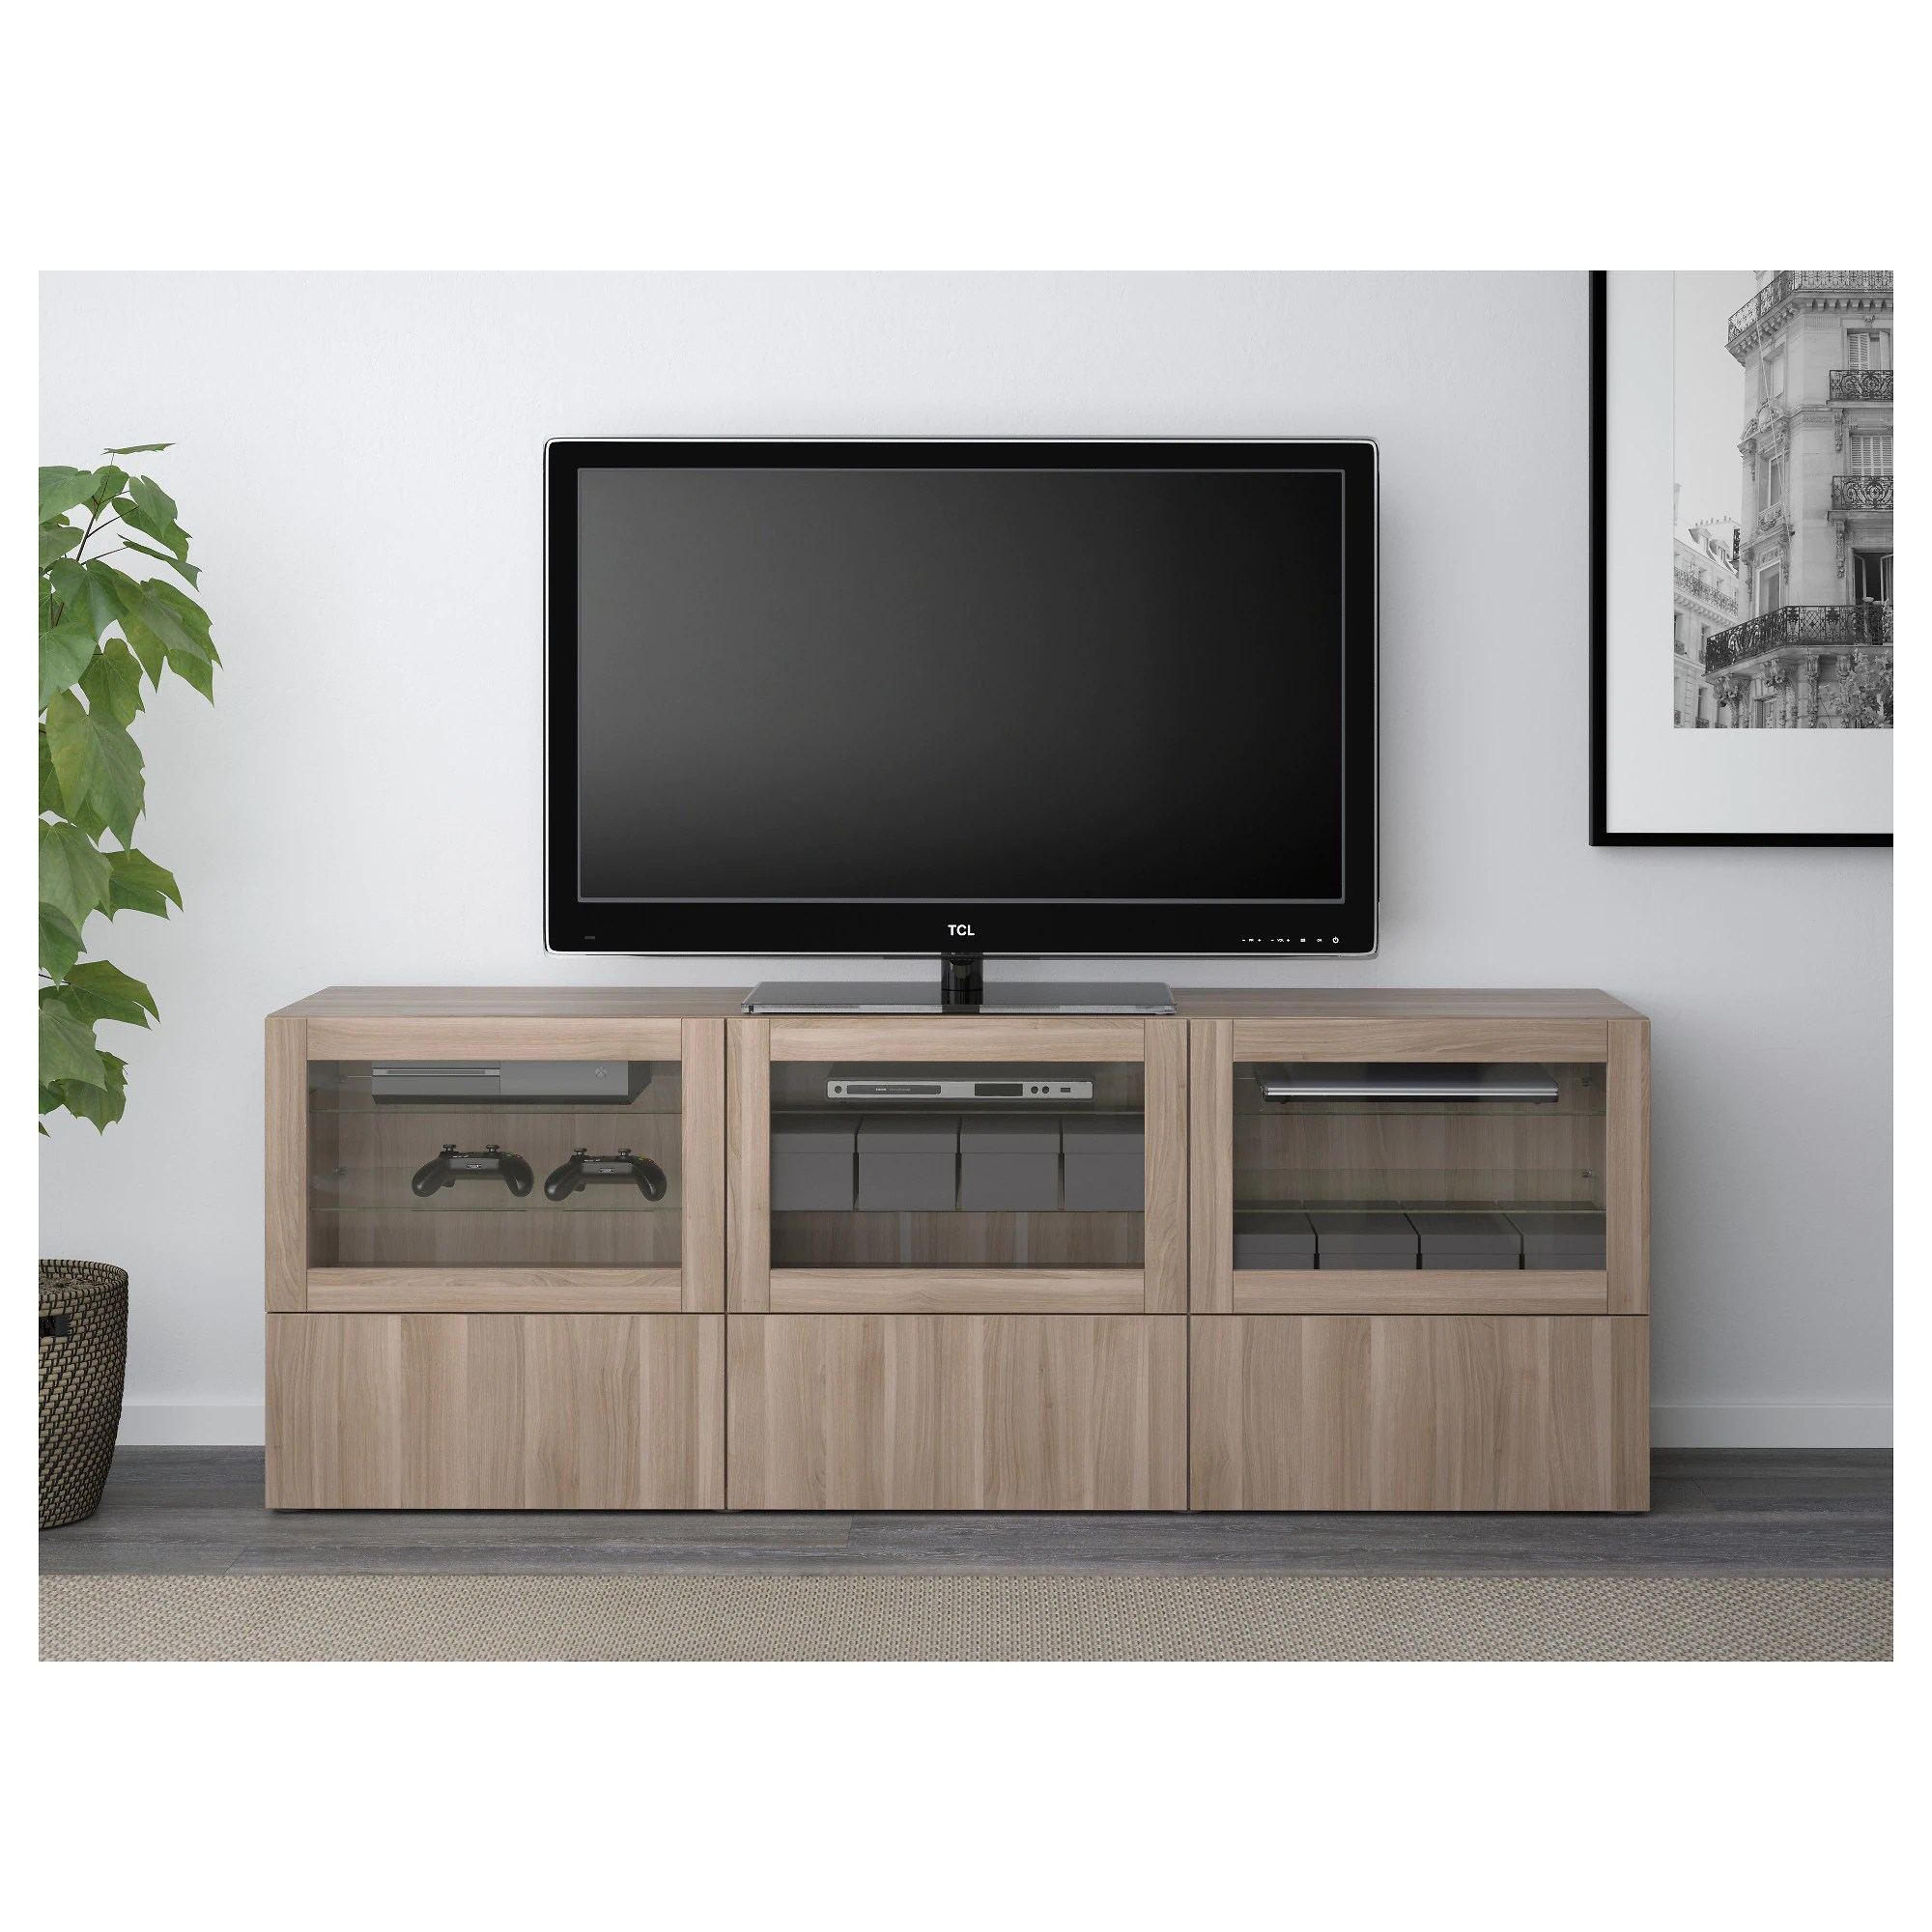 Tv Unit With Doors And Drawers Bestå Lappviken Sindvik Gray Stained Walnut Eff Clear Glass